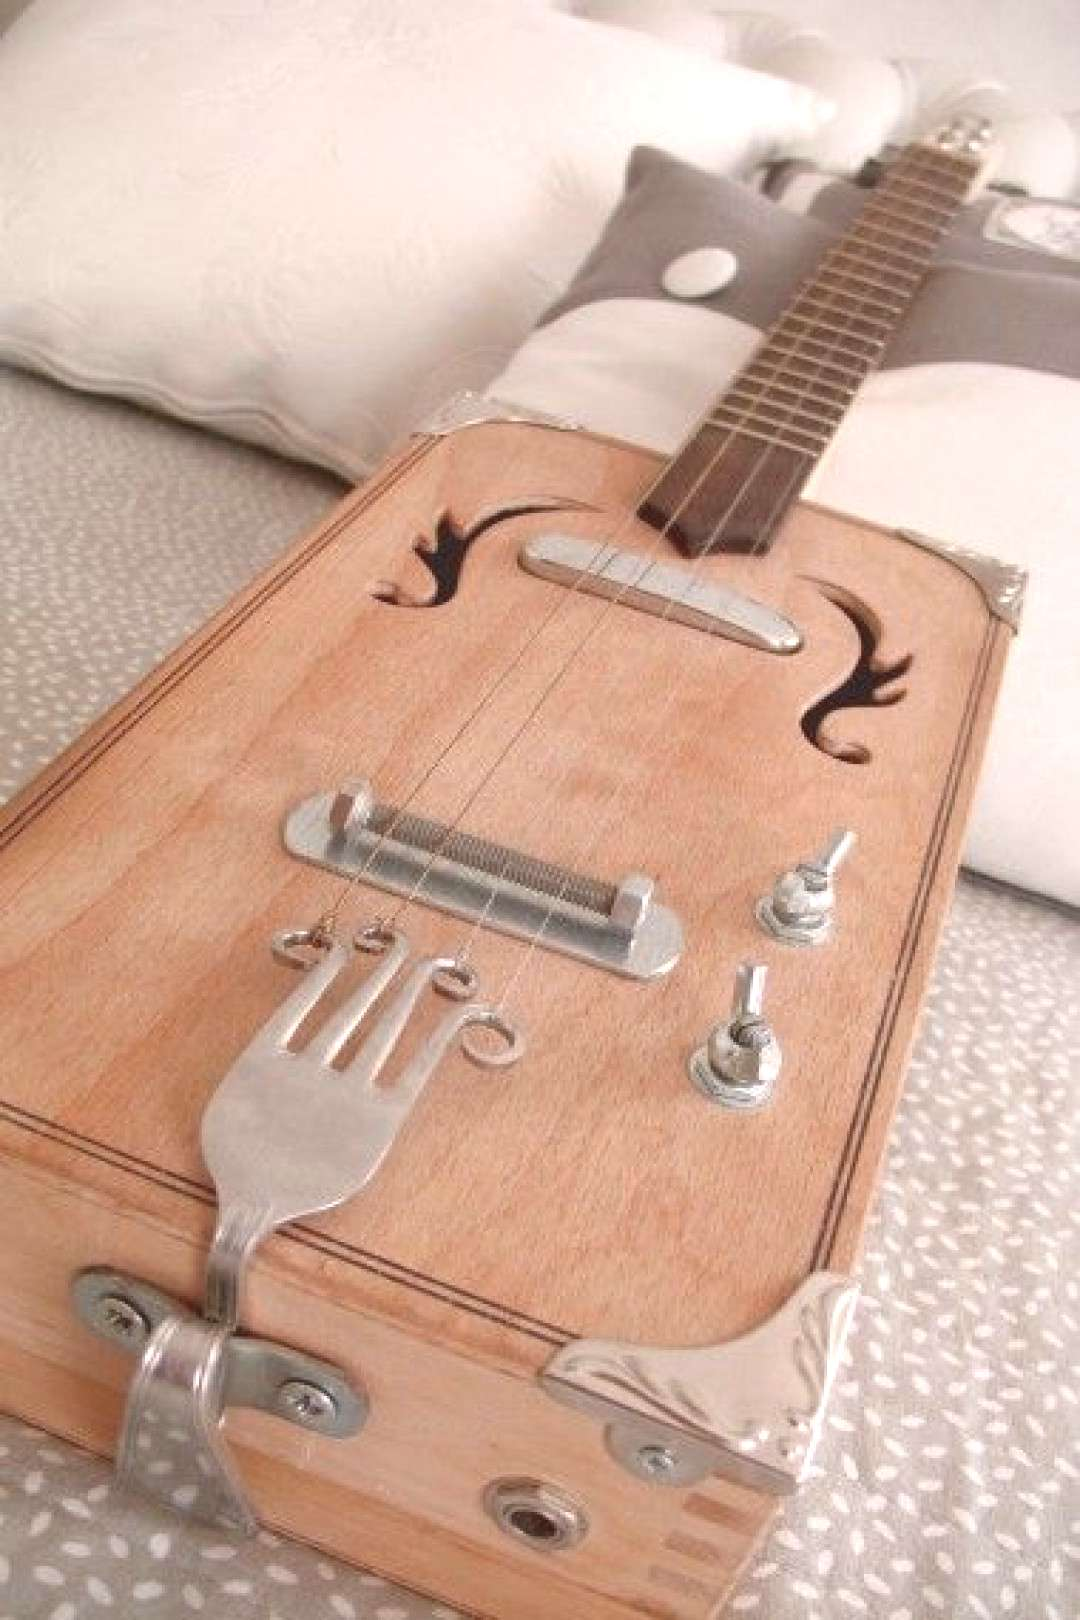 Whoa! Spare guitar parts AND silverware all rolled into an awesome cigar box guitar! Check it out